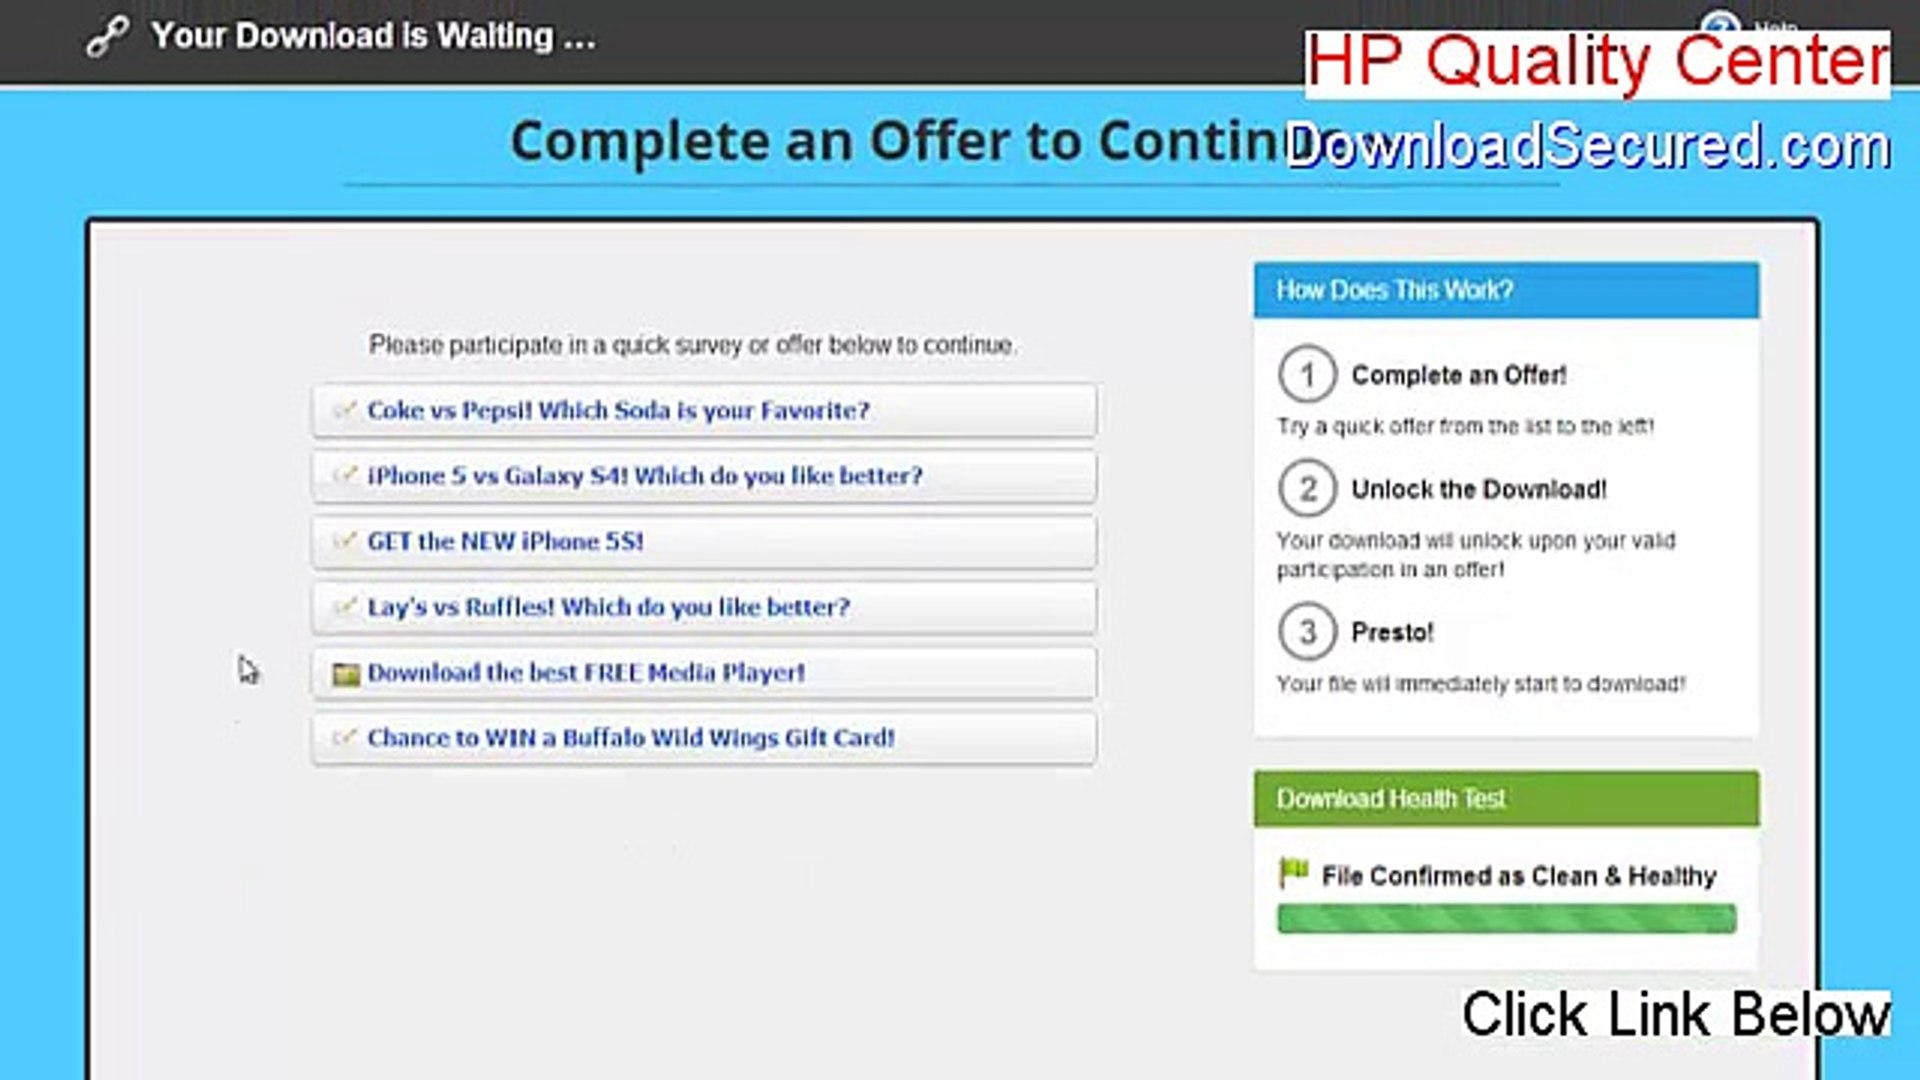 HP Quality Center Download Free [hp quality center tutorial]